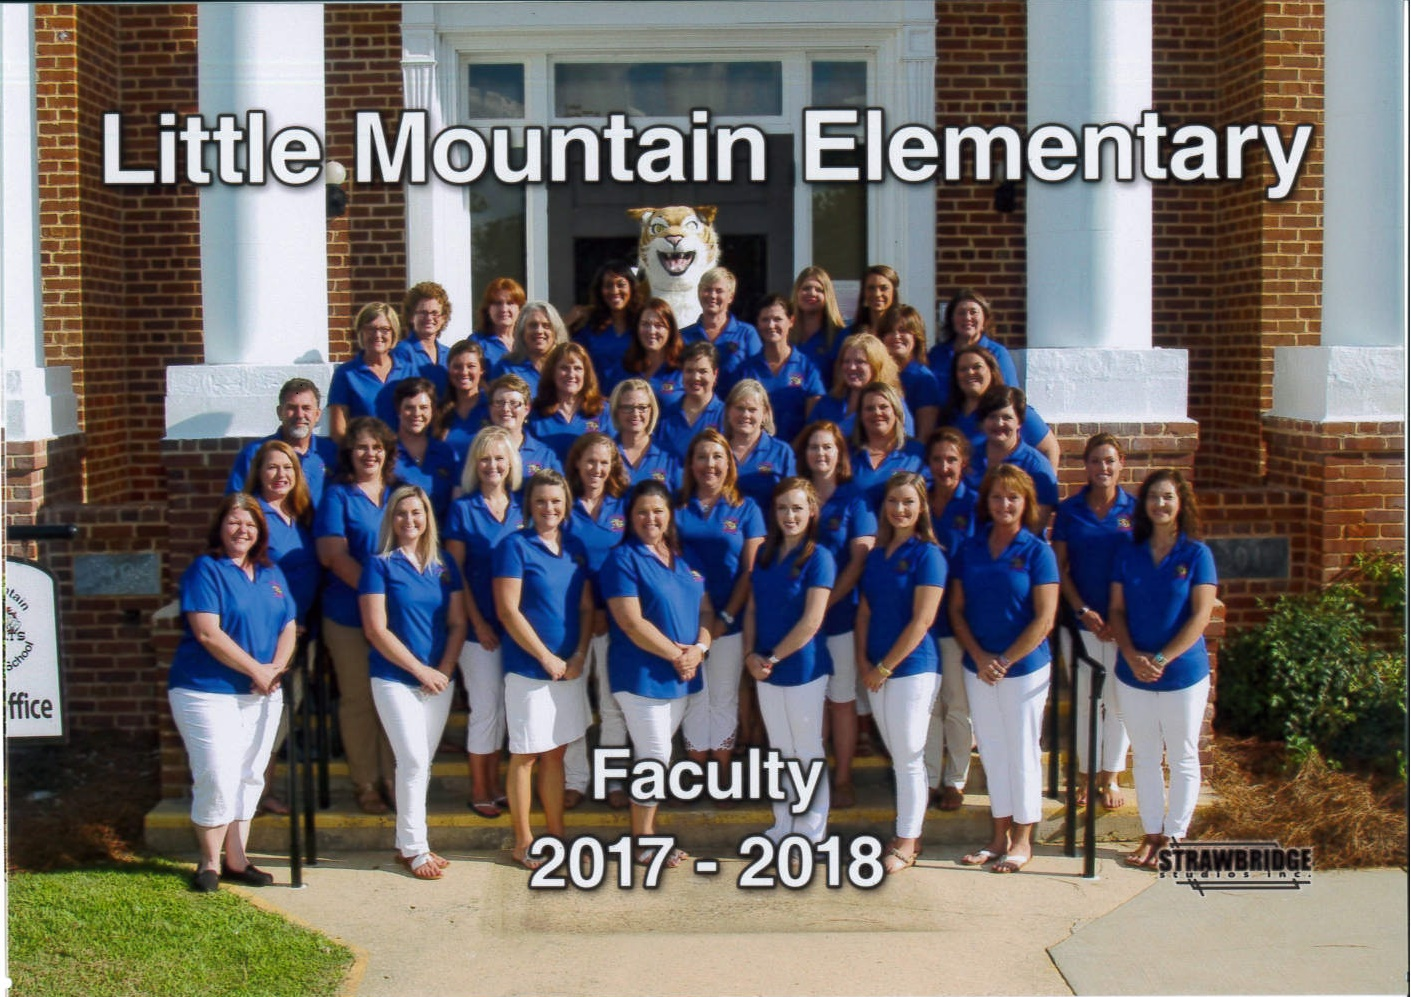 LME Faculty and Staff